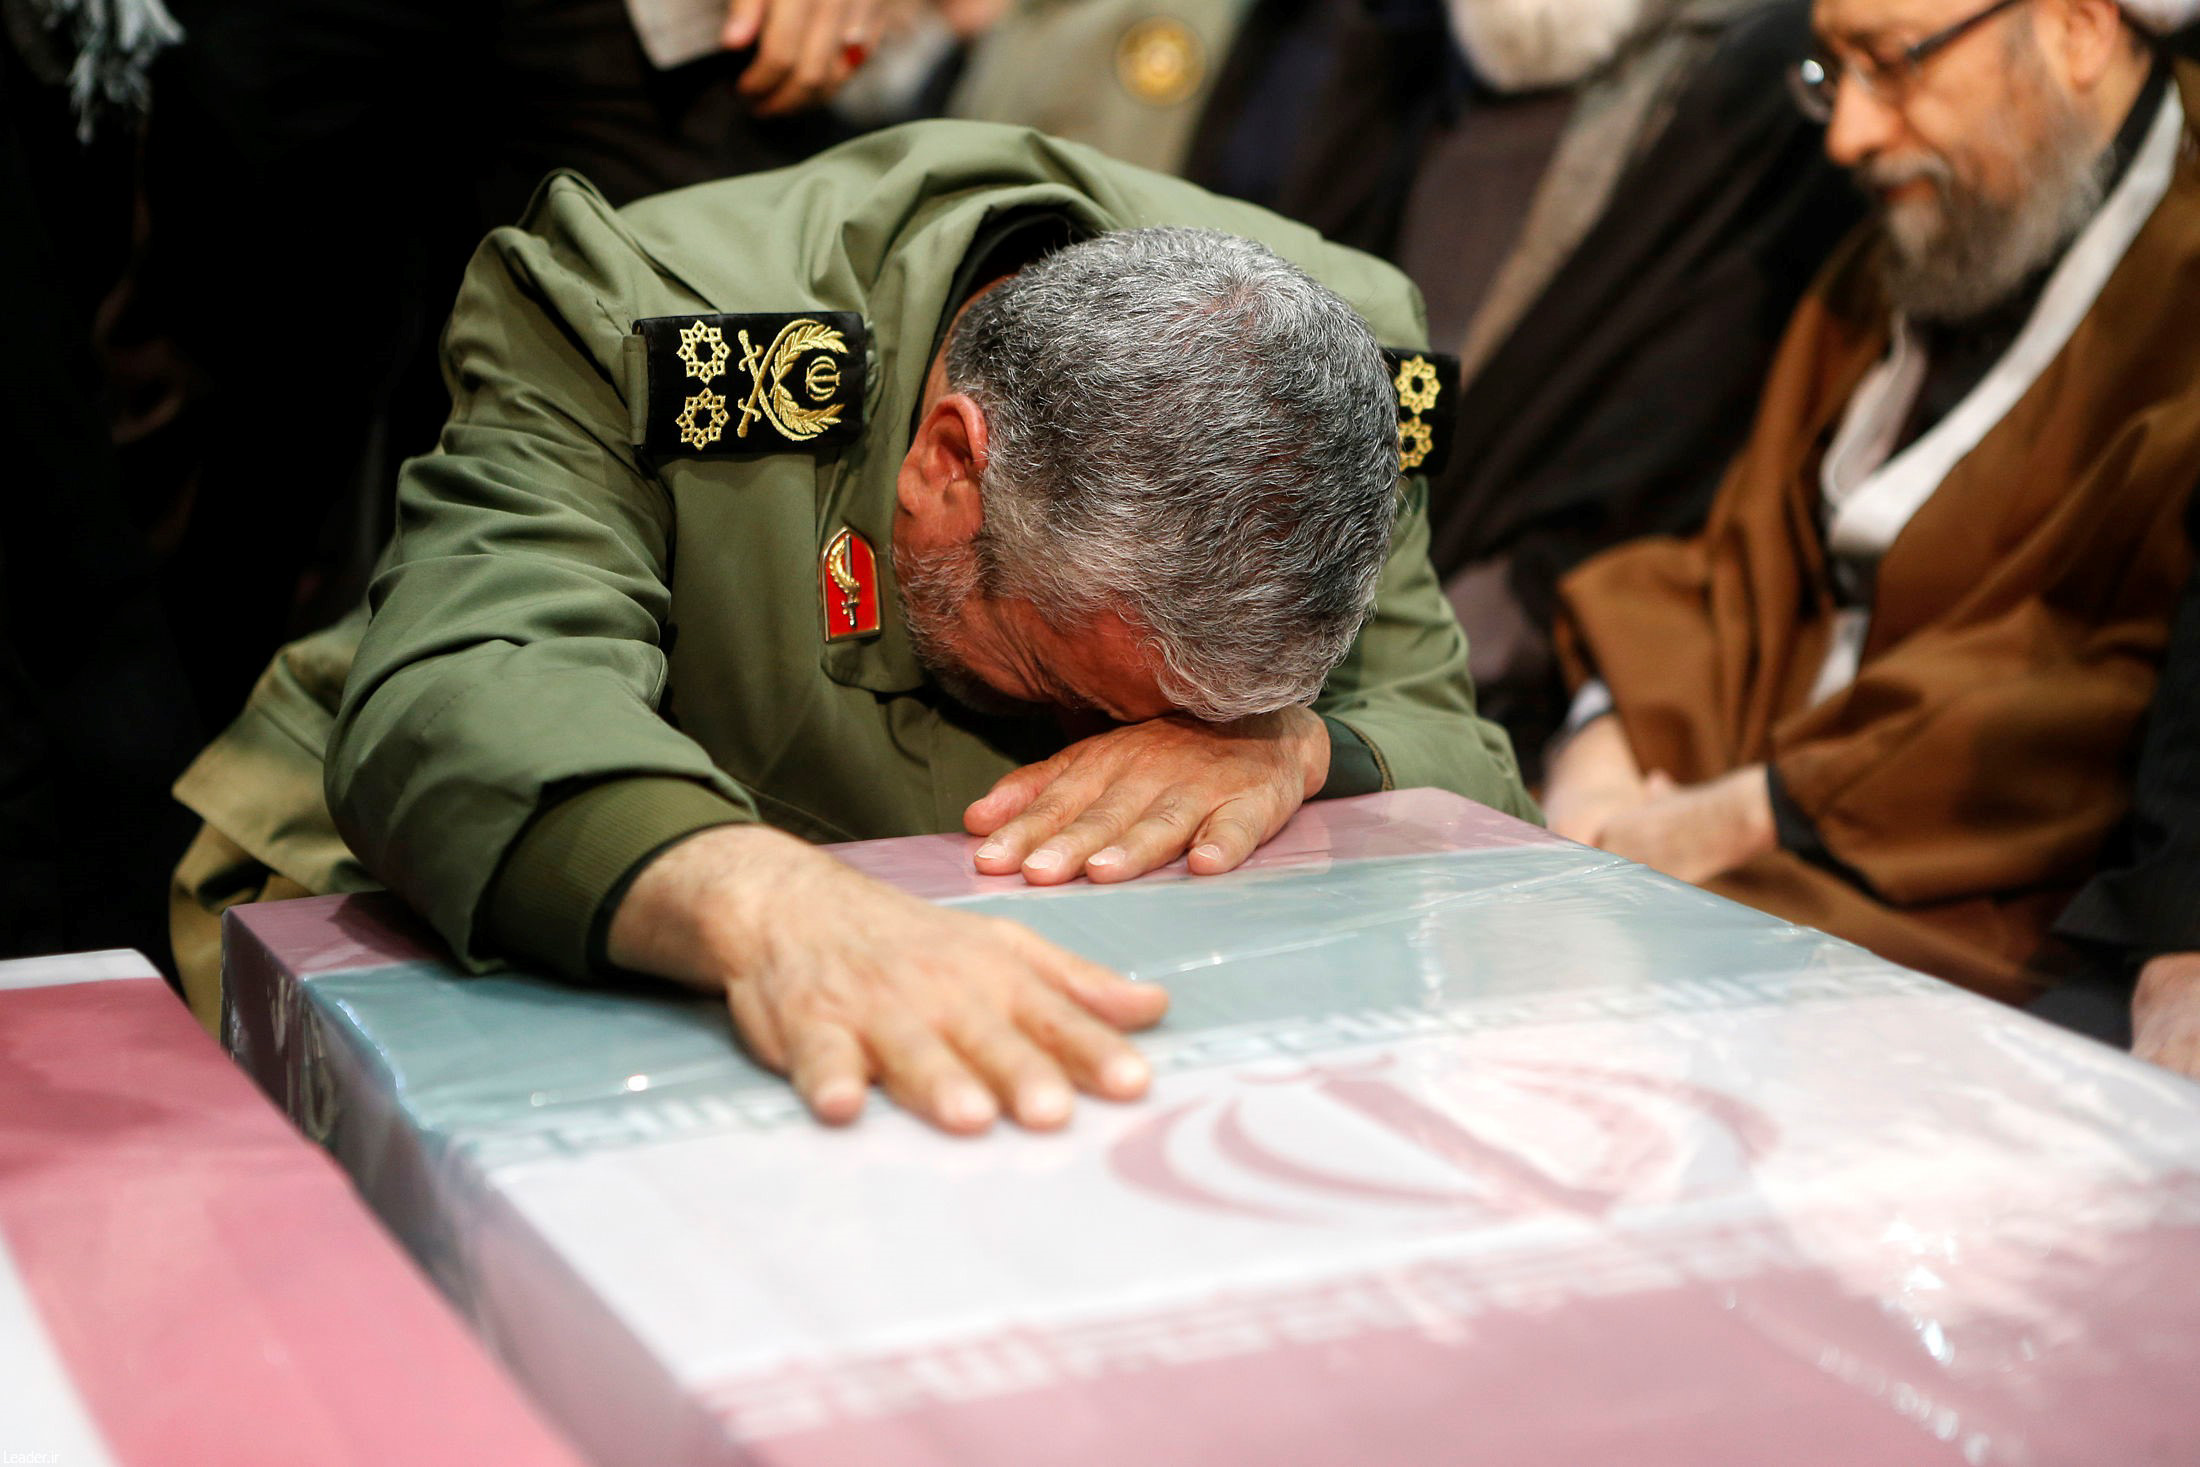 General Ismail Qaani -- Soleimani's long-time lieutenant and his successor as the leader of the Iranian Revolutionary Guards' Quds Force -- cries over Soleimani's coffin during the funeral ceremony on Monday.